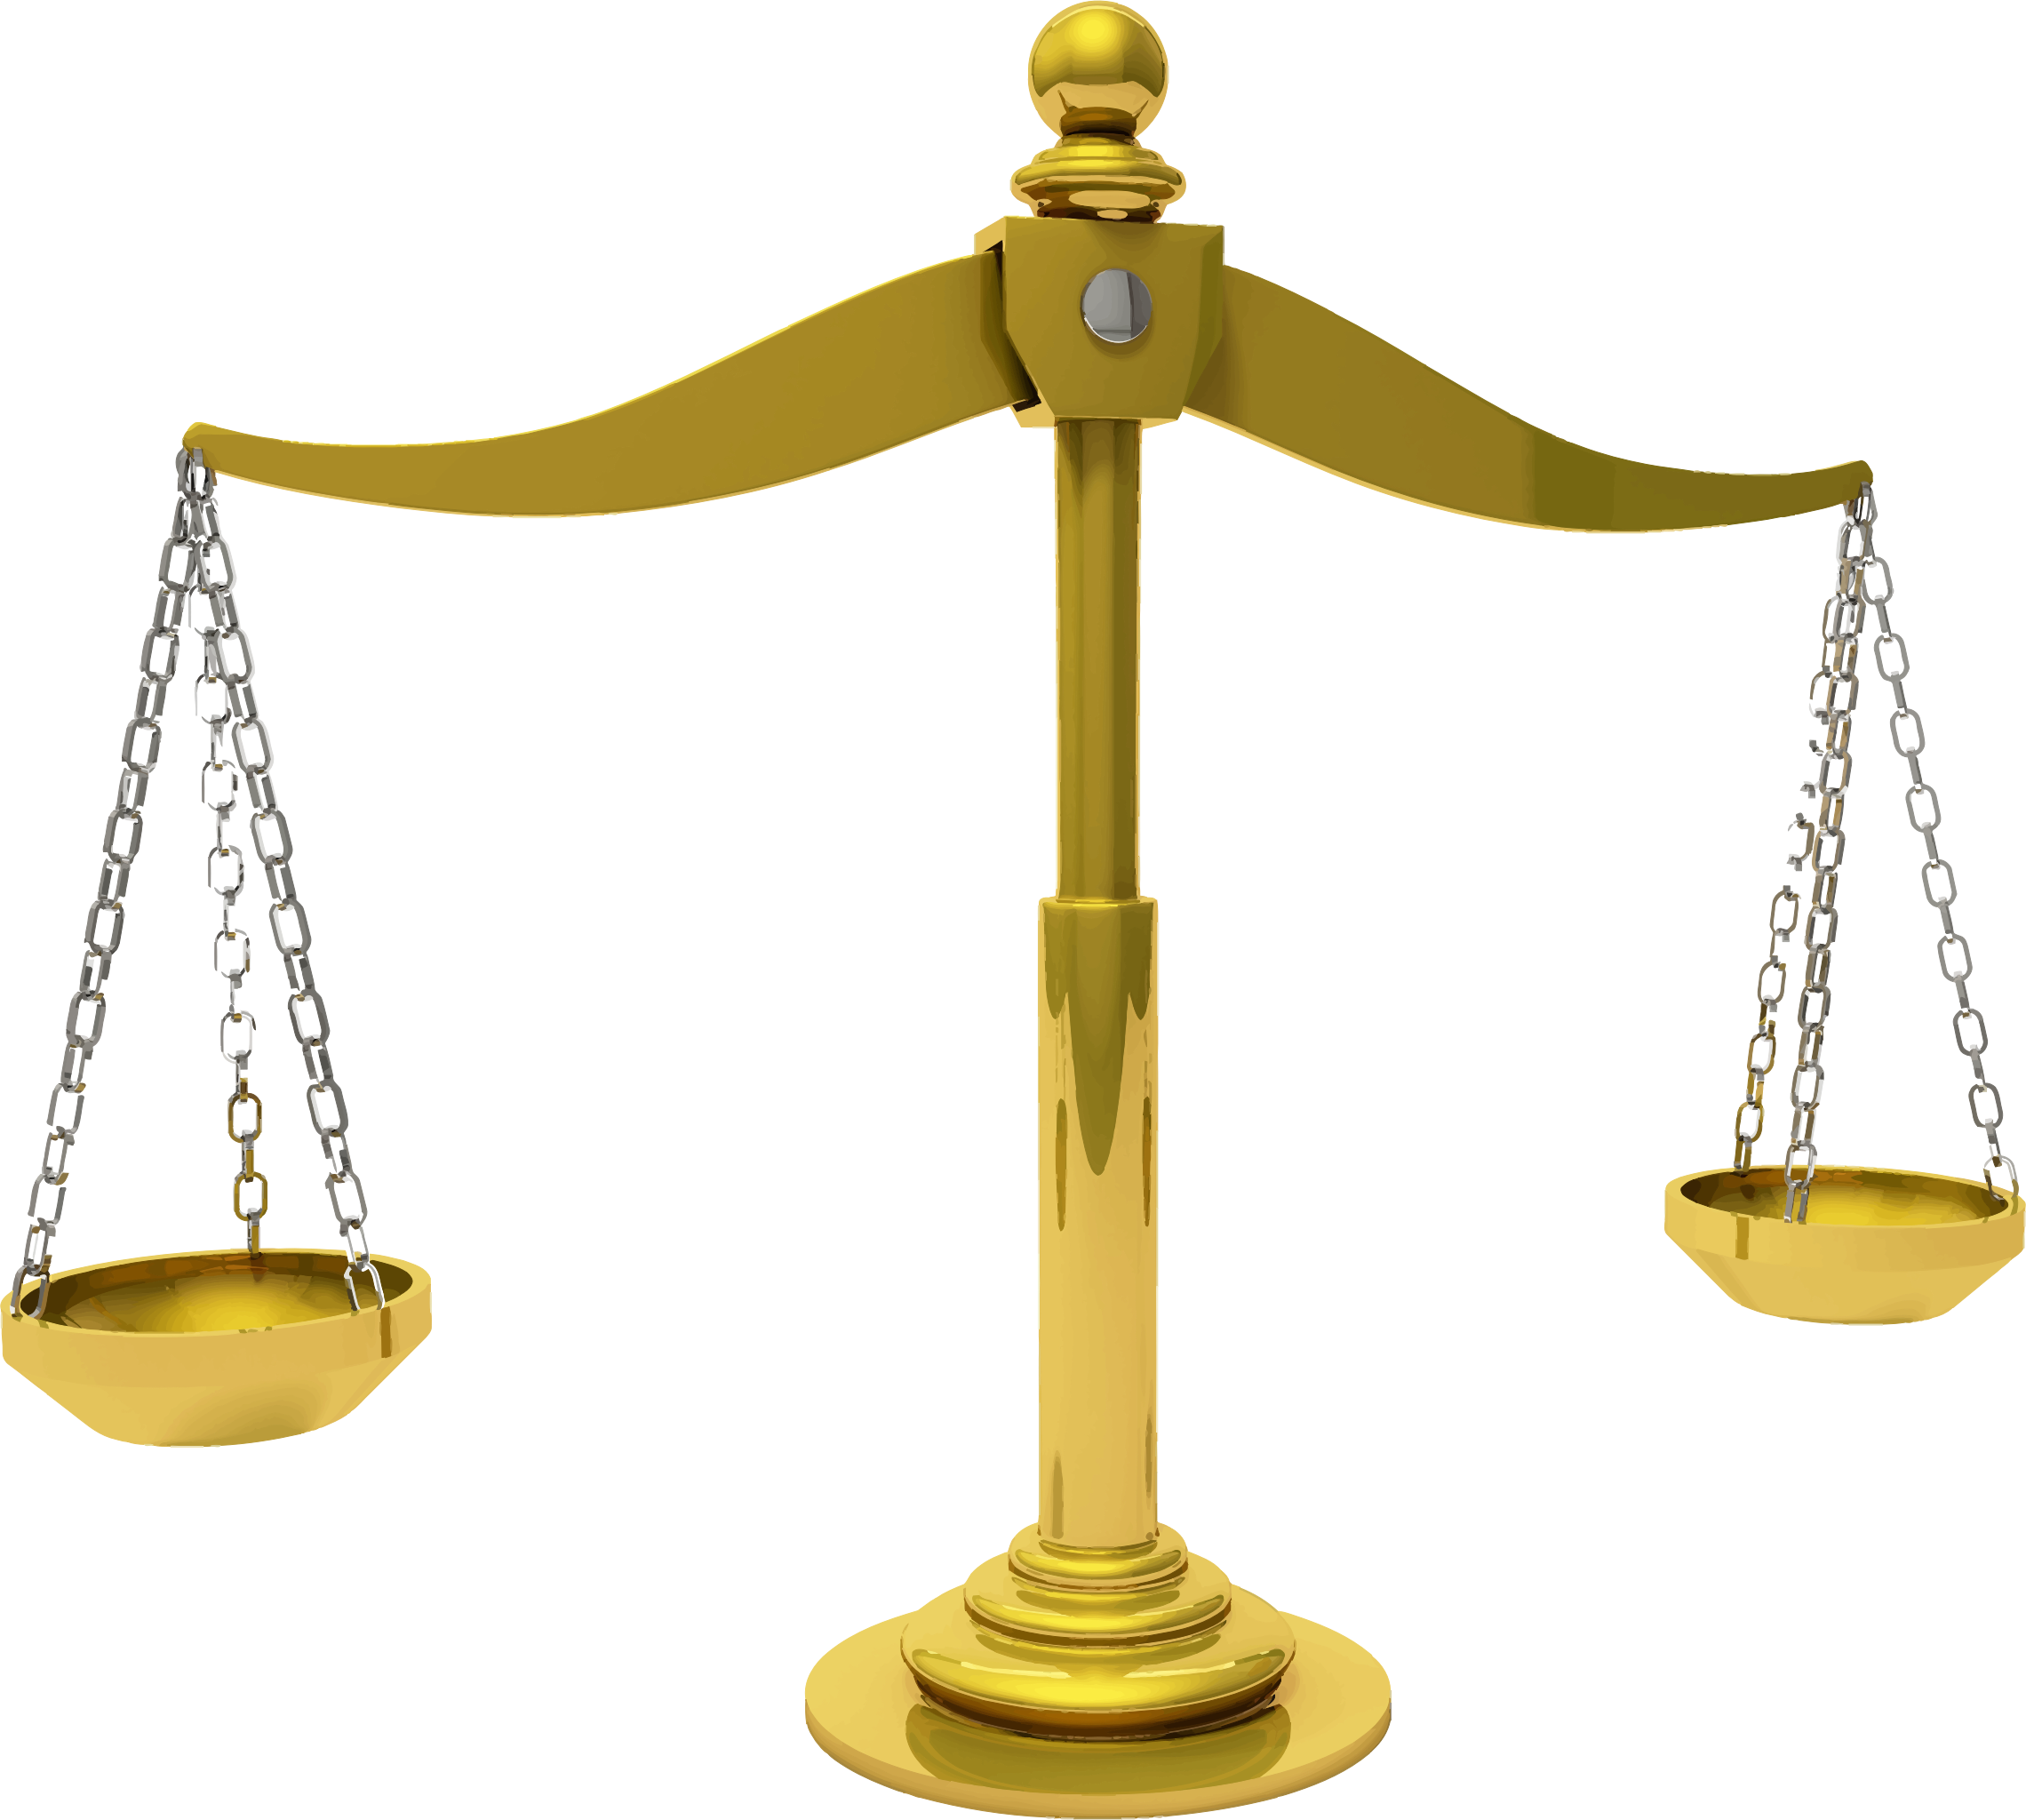 Justice clipart law and order. Brass scales of big